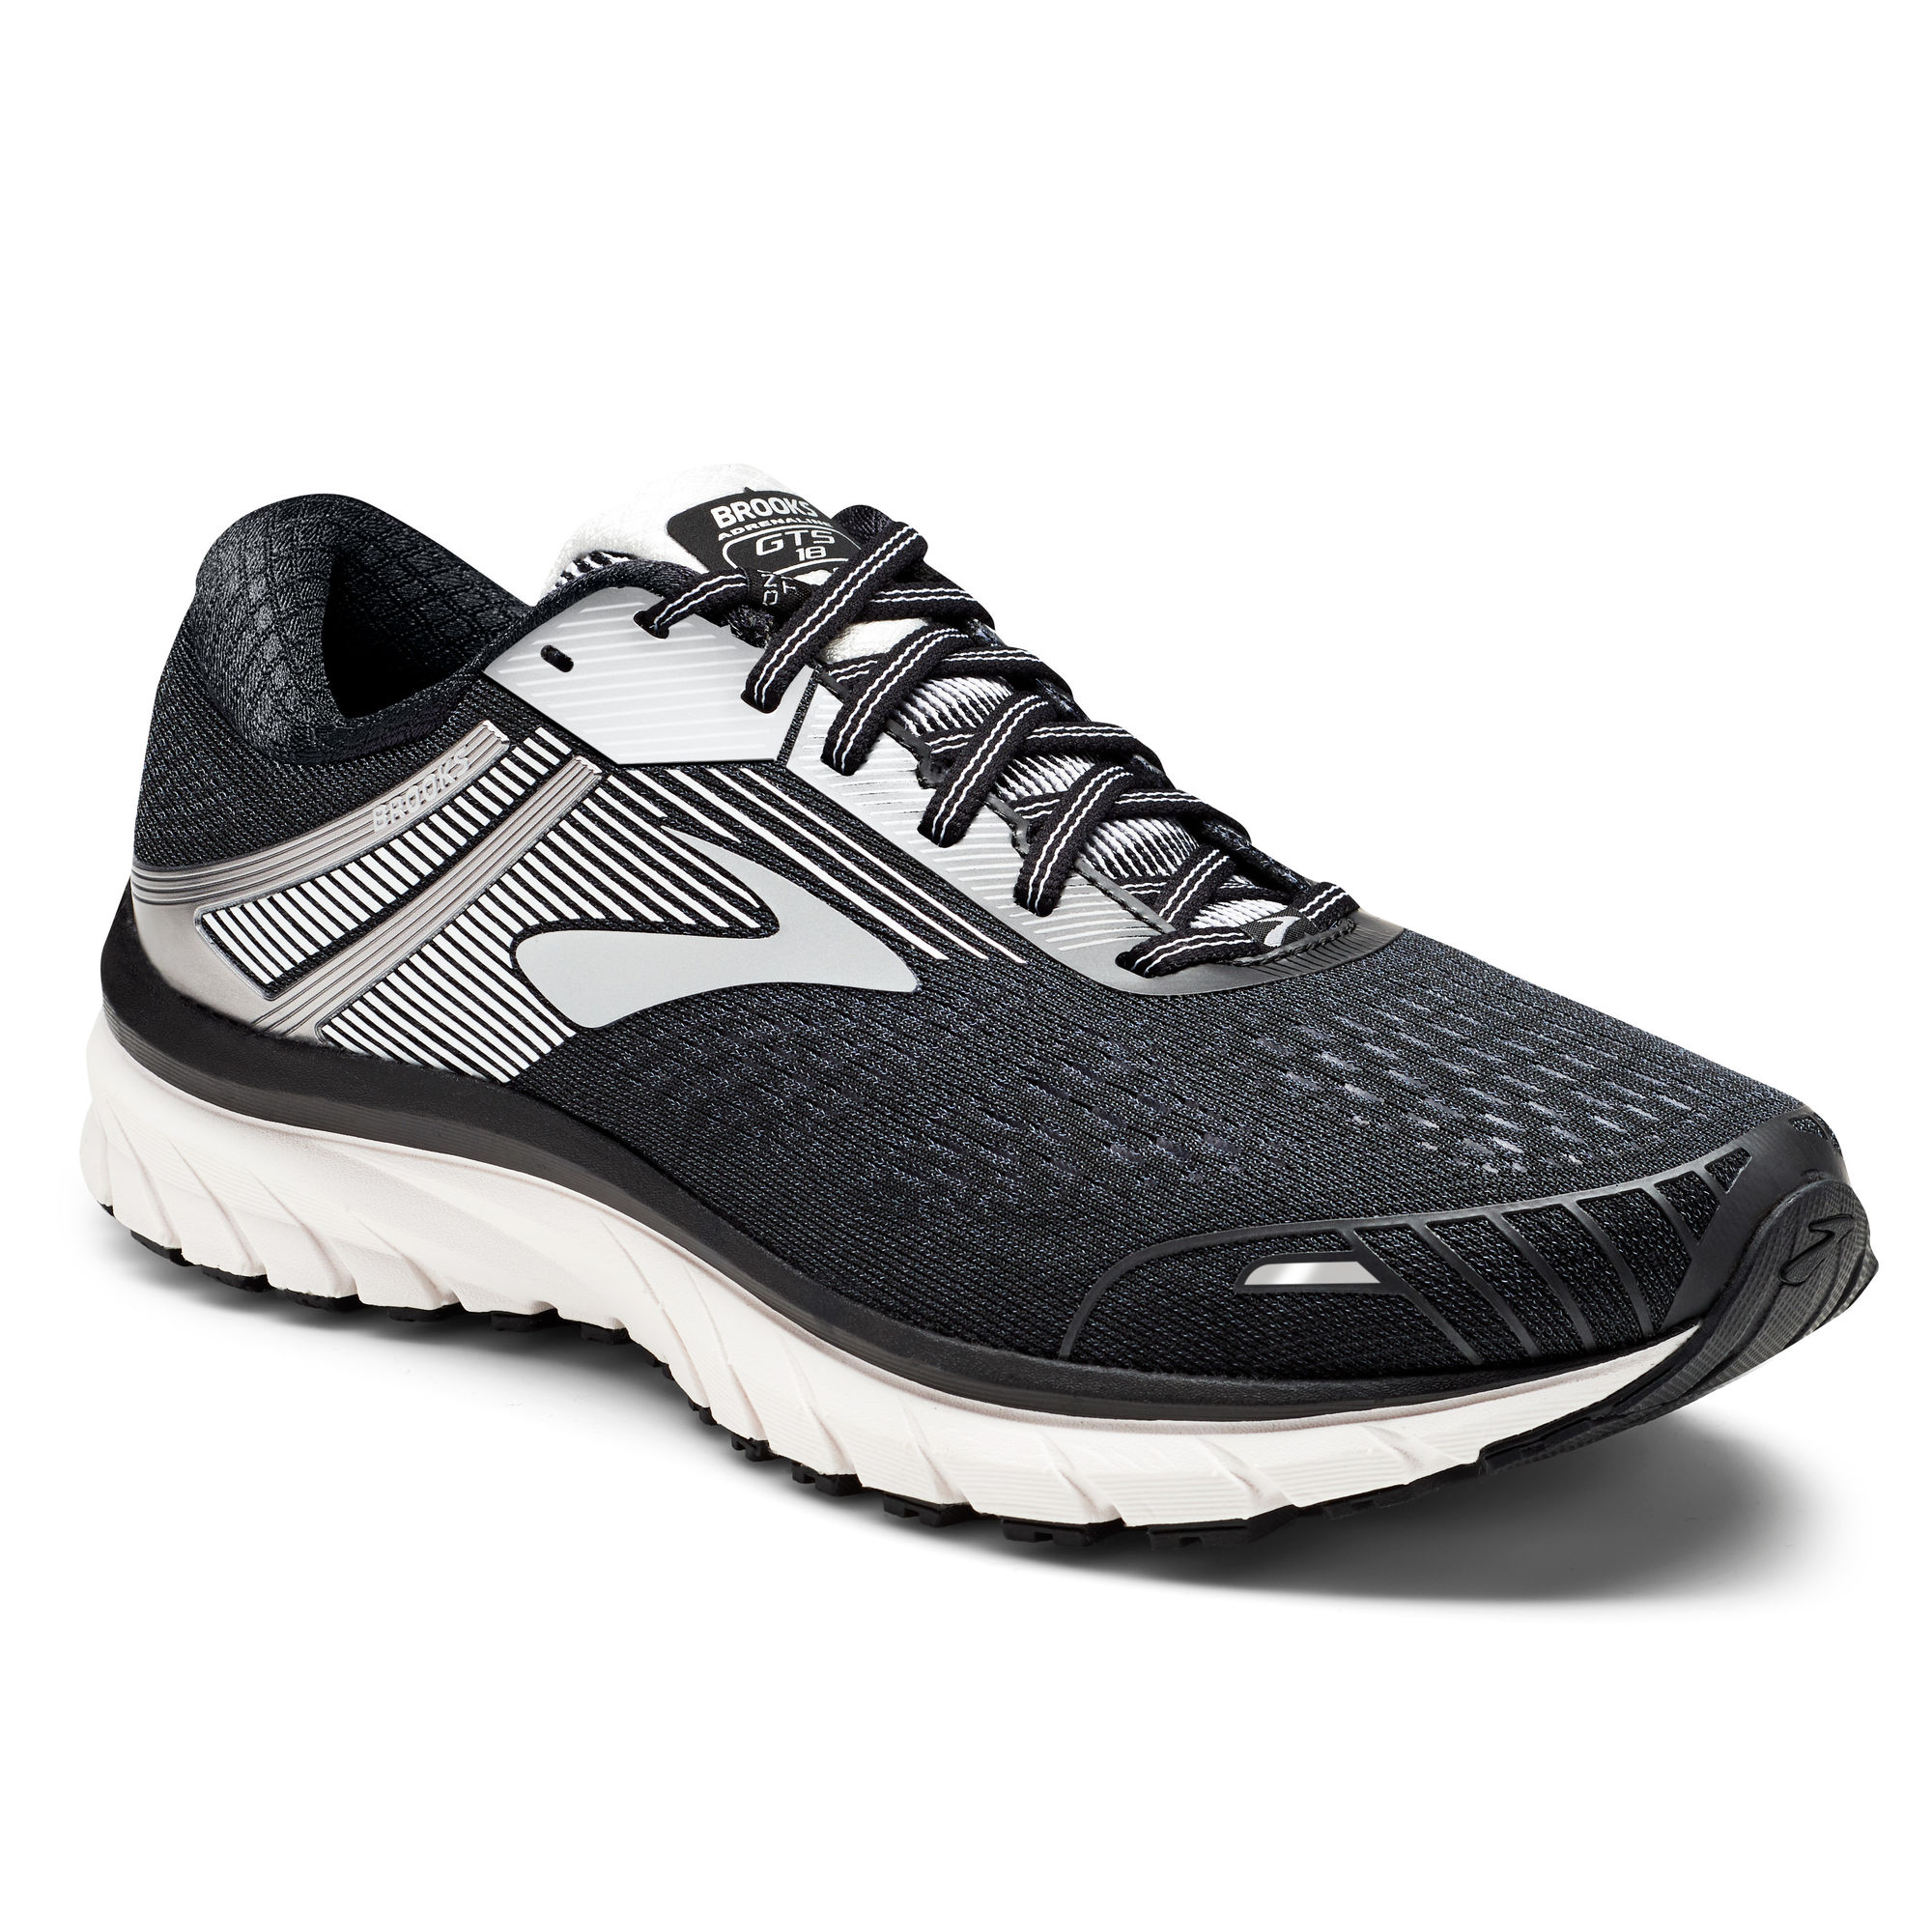 Brooks Adrenaline 18 D in Schwarz Grau